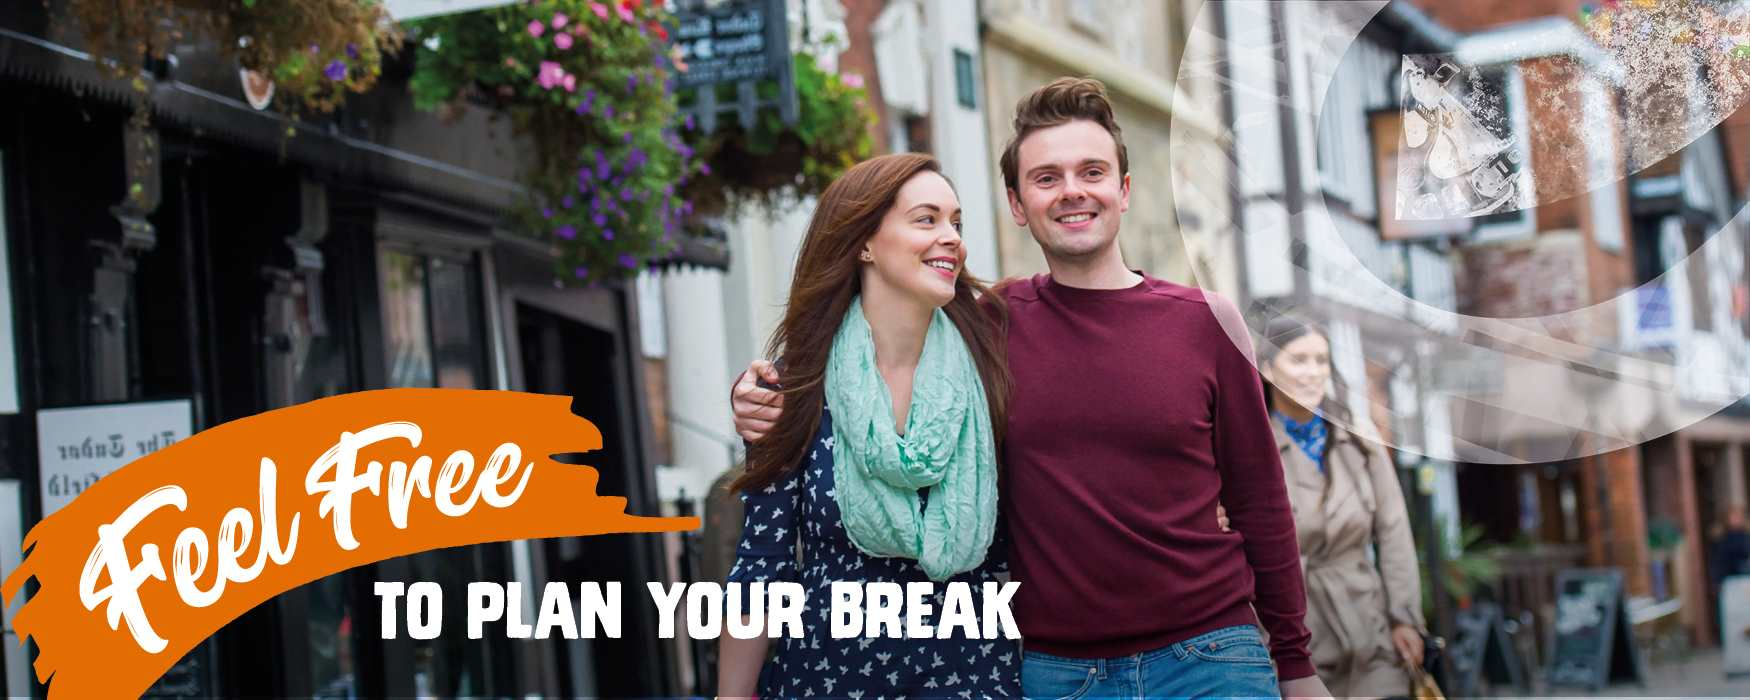 Feel Free to plan your short break in Staffordshire. Couple shopping in Lichfield historic city centre.